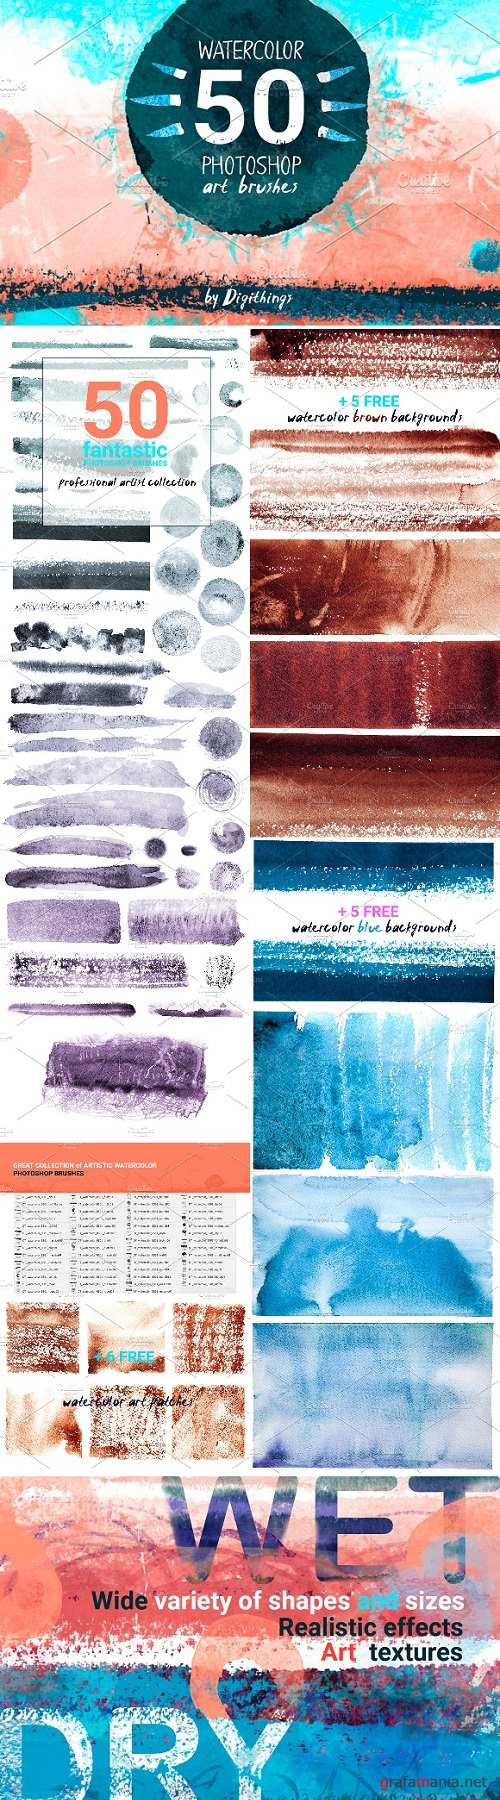 Watercolor art brushes for Photoshop 1834996